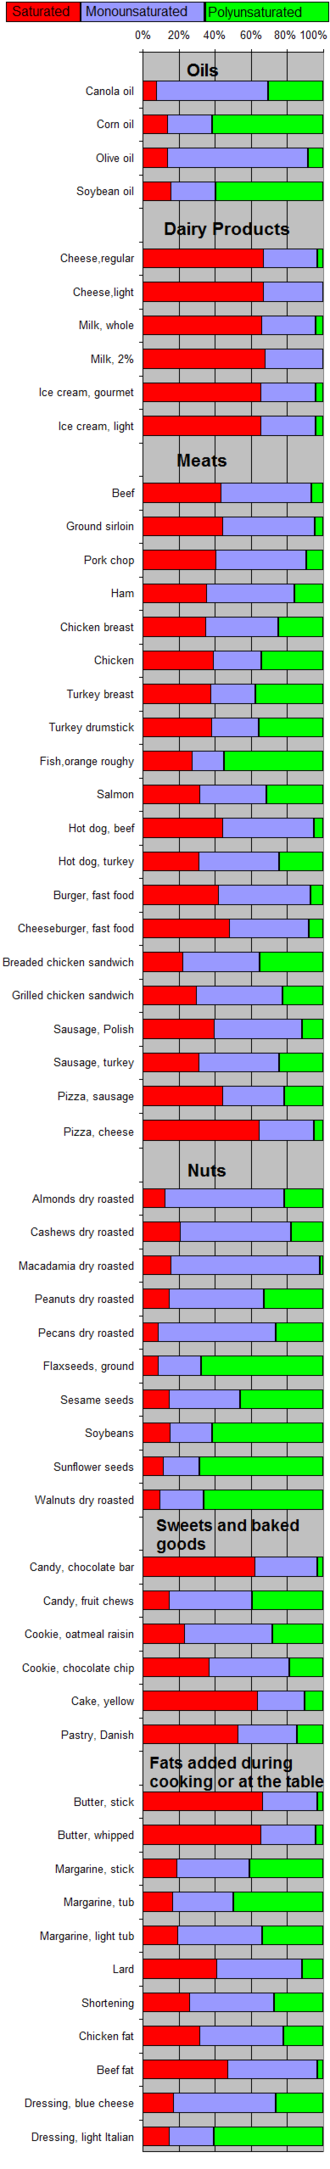 Fat - Composition of fats from various foods, as percentage of their total fat.